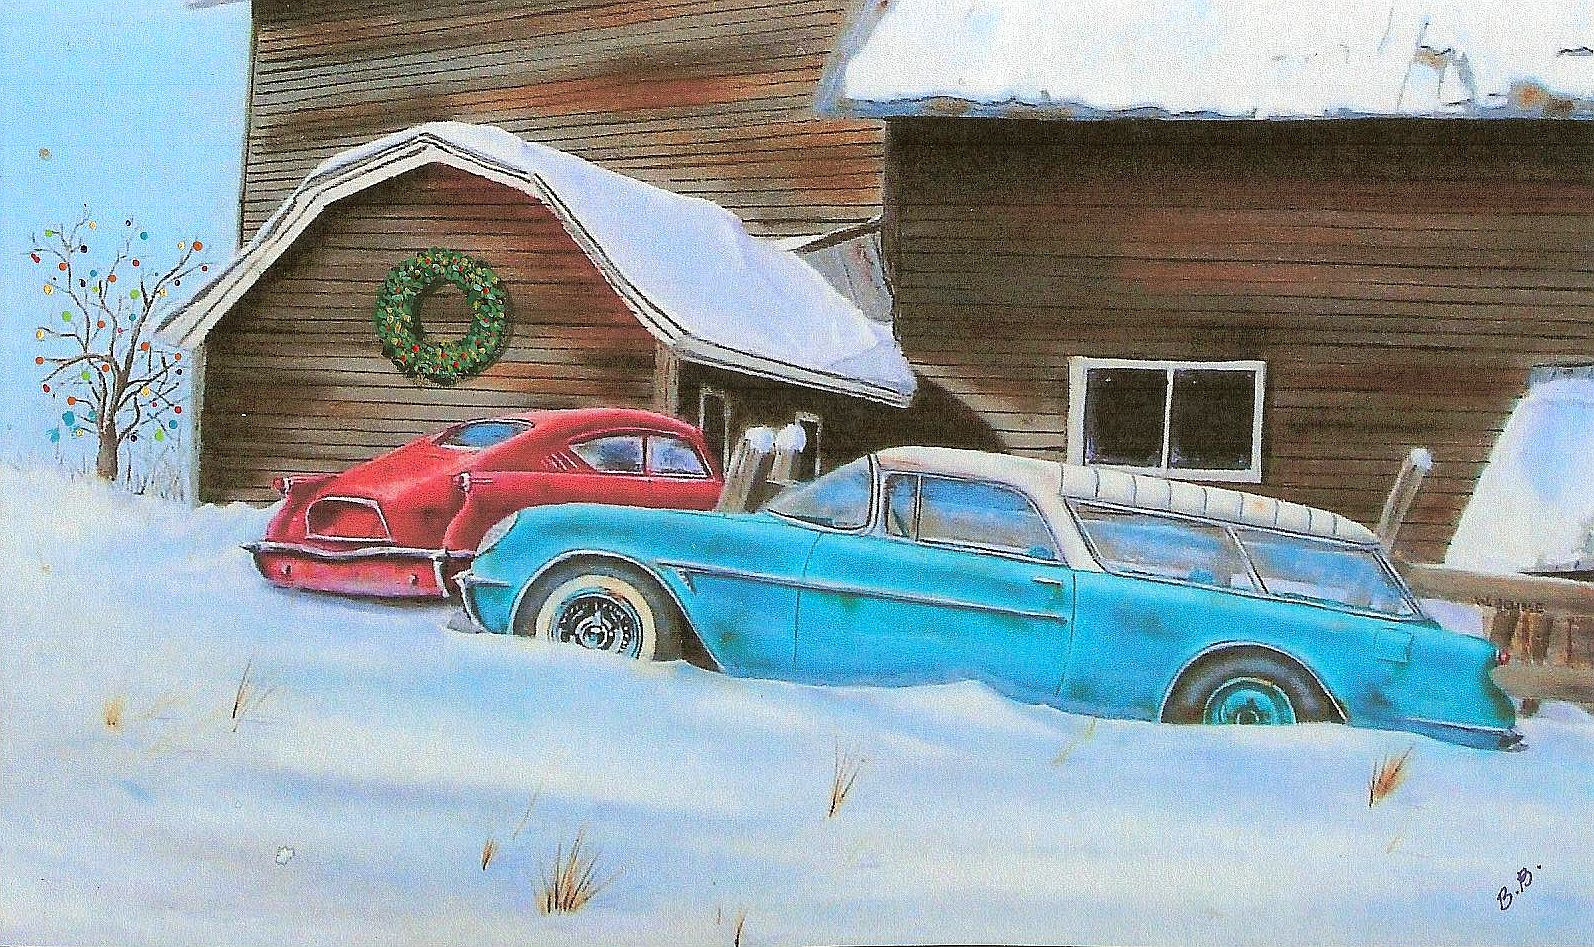 Click image for larger version  Name:Xmas 'Vettes.jpg Views:1140 Size:558.2 KB ID:69941